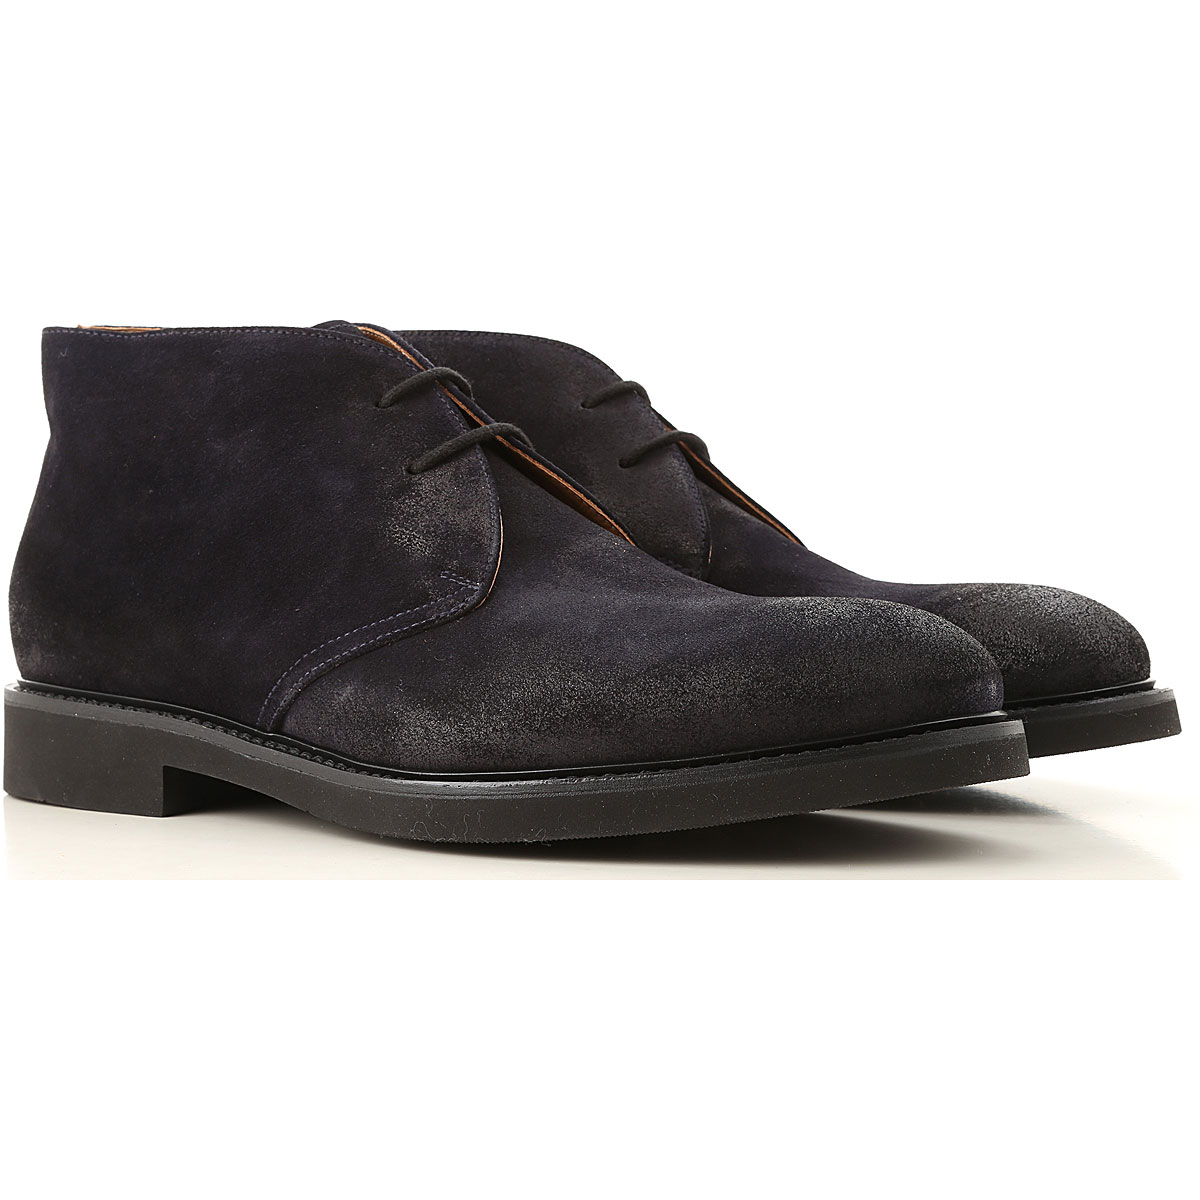 Doucals Desert Boots Chukka for Men, Midnight Blue, Suede leather, 2019, 10 10.5 12 7.5 8 9